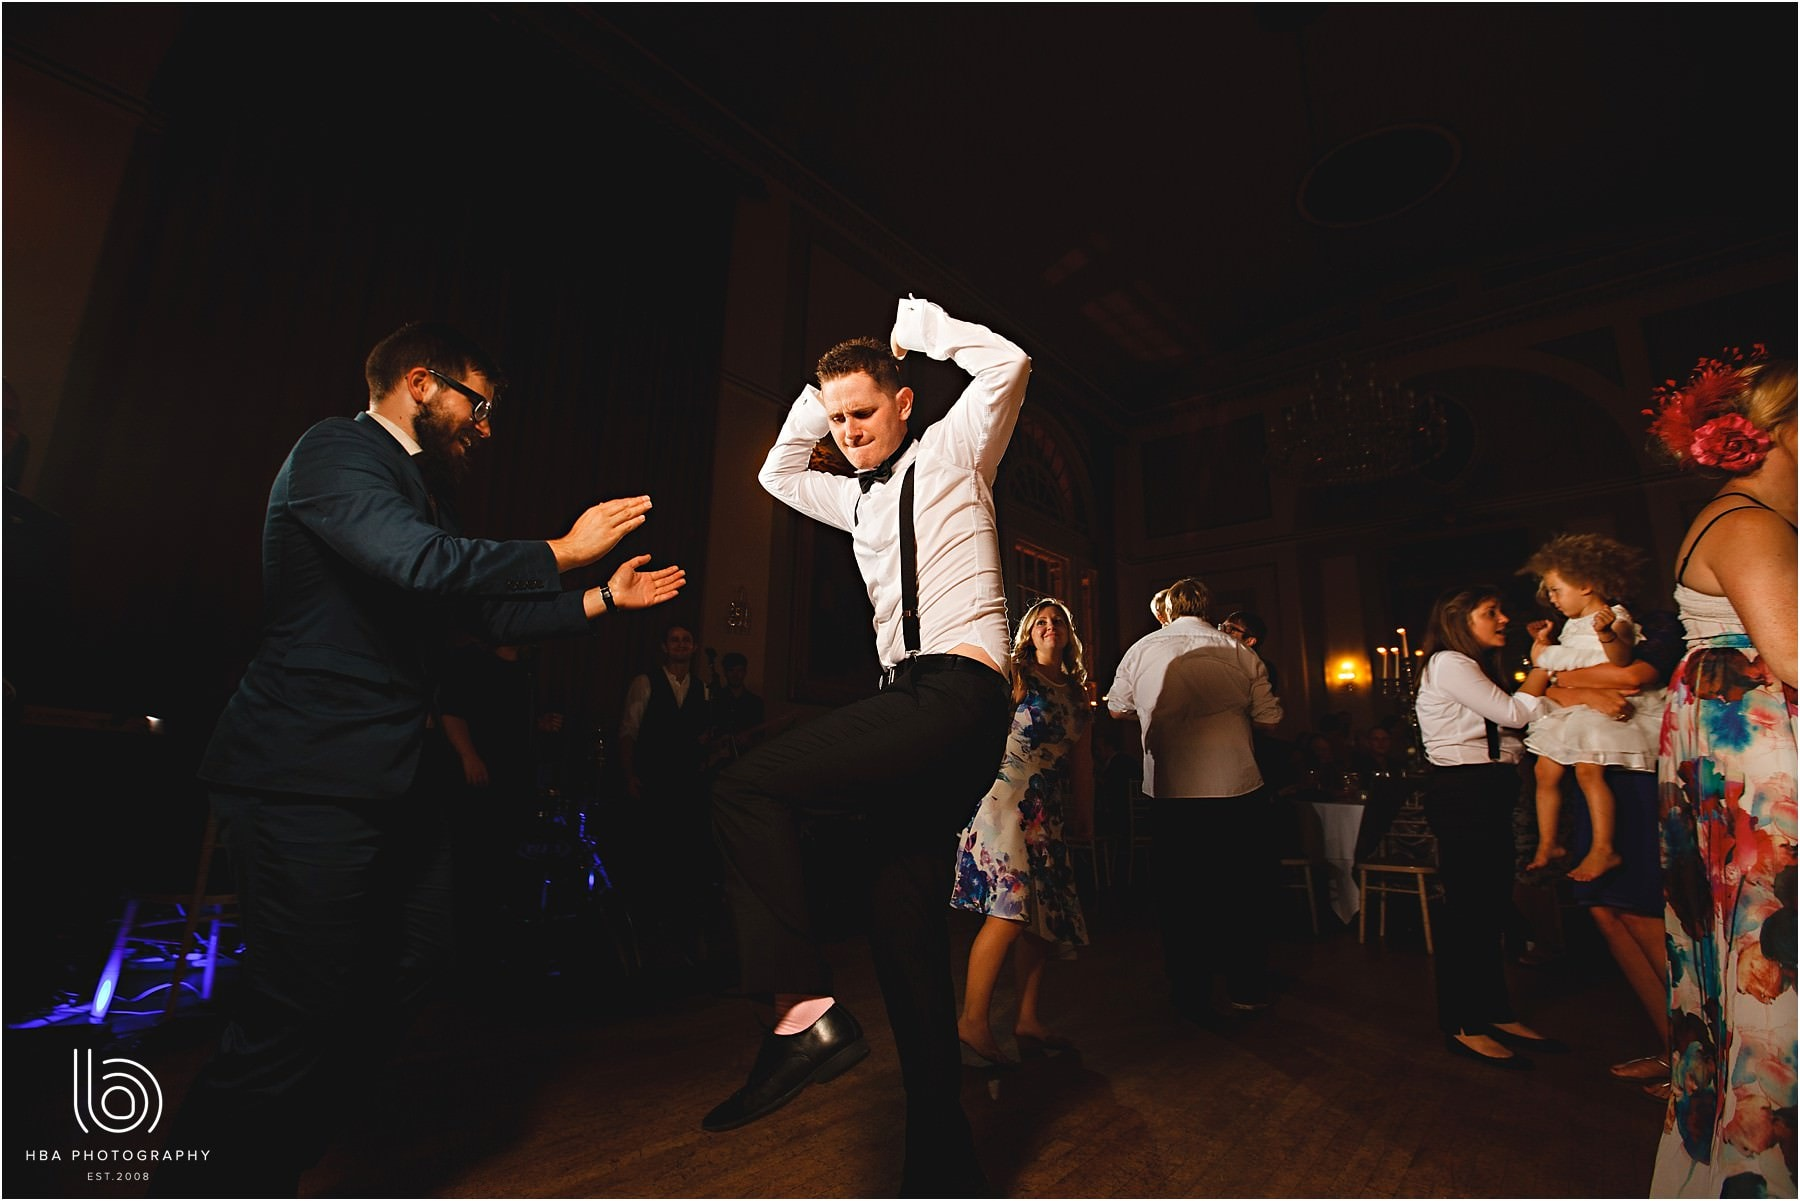 the groom dancing on their wedding day